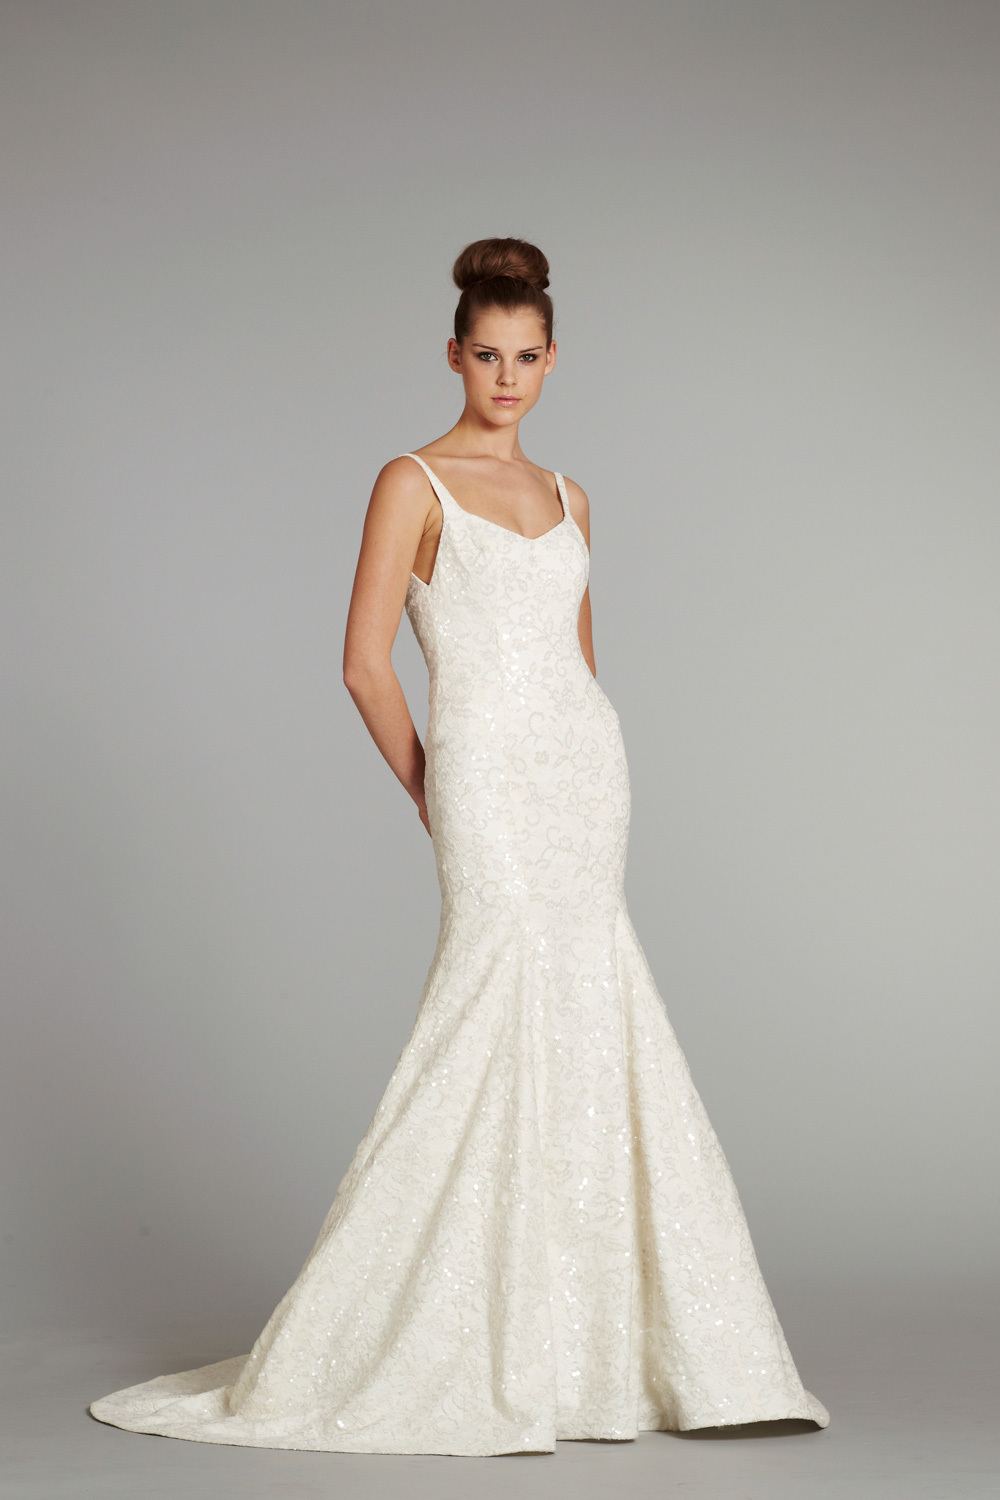 New-bridal-gowns-fall-2012-wedding-dress-hayley-paige-for-jlm-couture-vanna.full